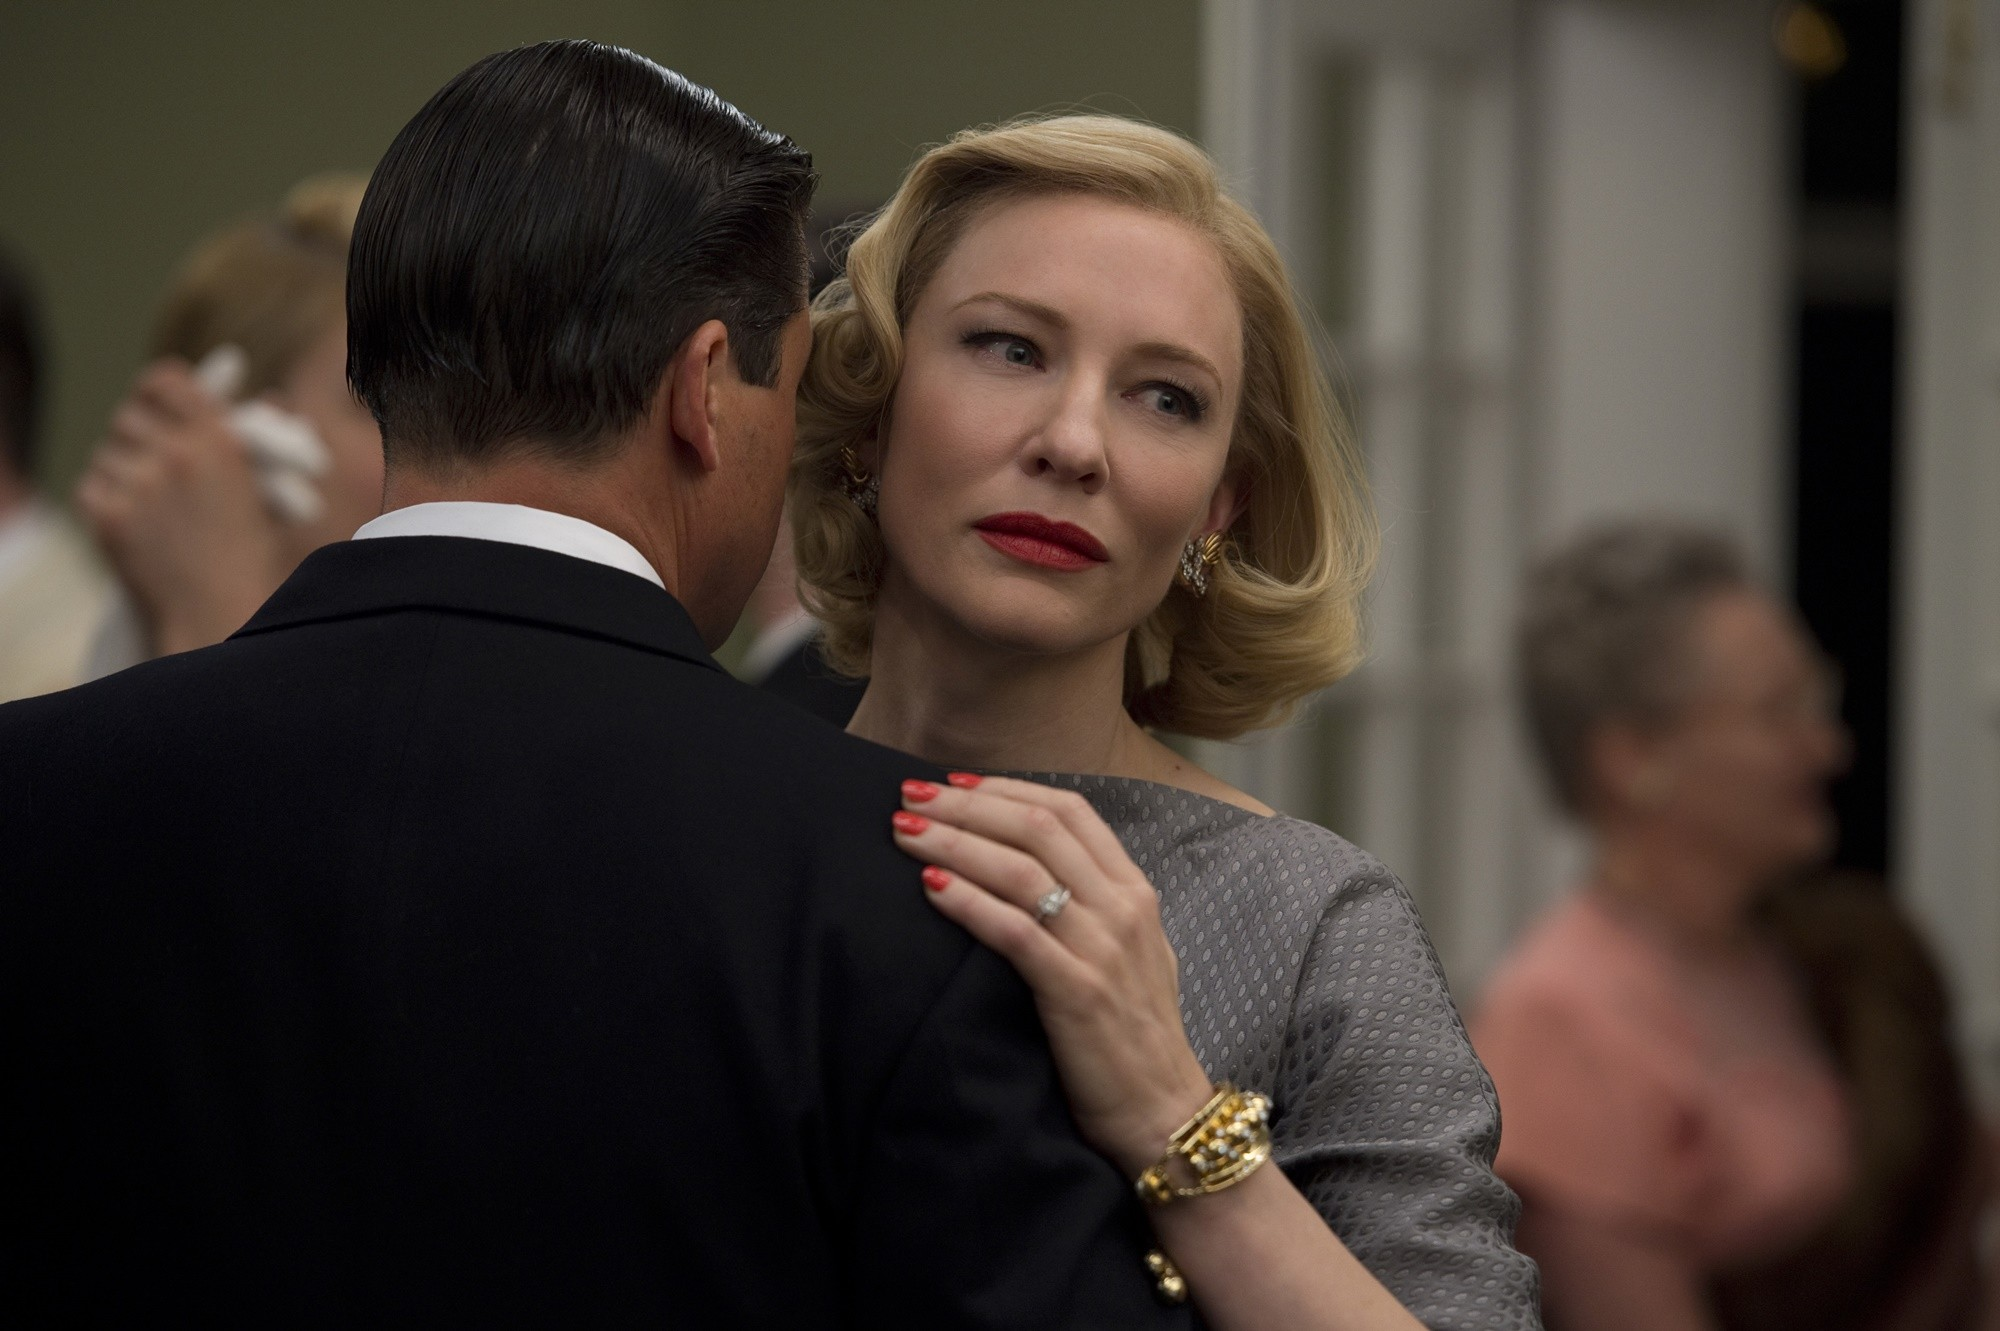 (L-R) KYLE CHANDLER and CATE BLANCHETT star in CAROL